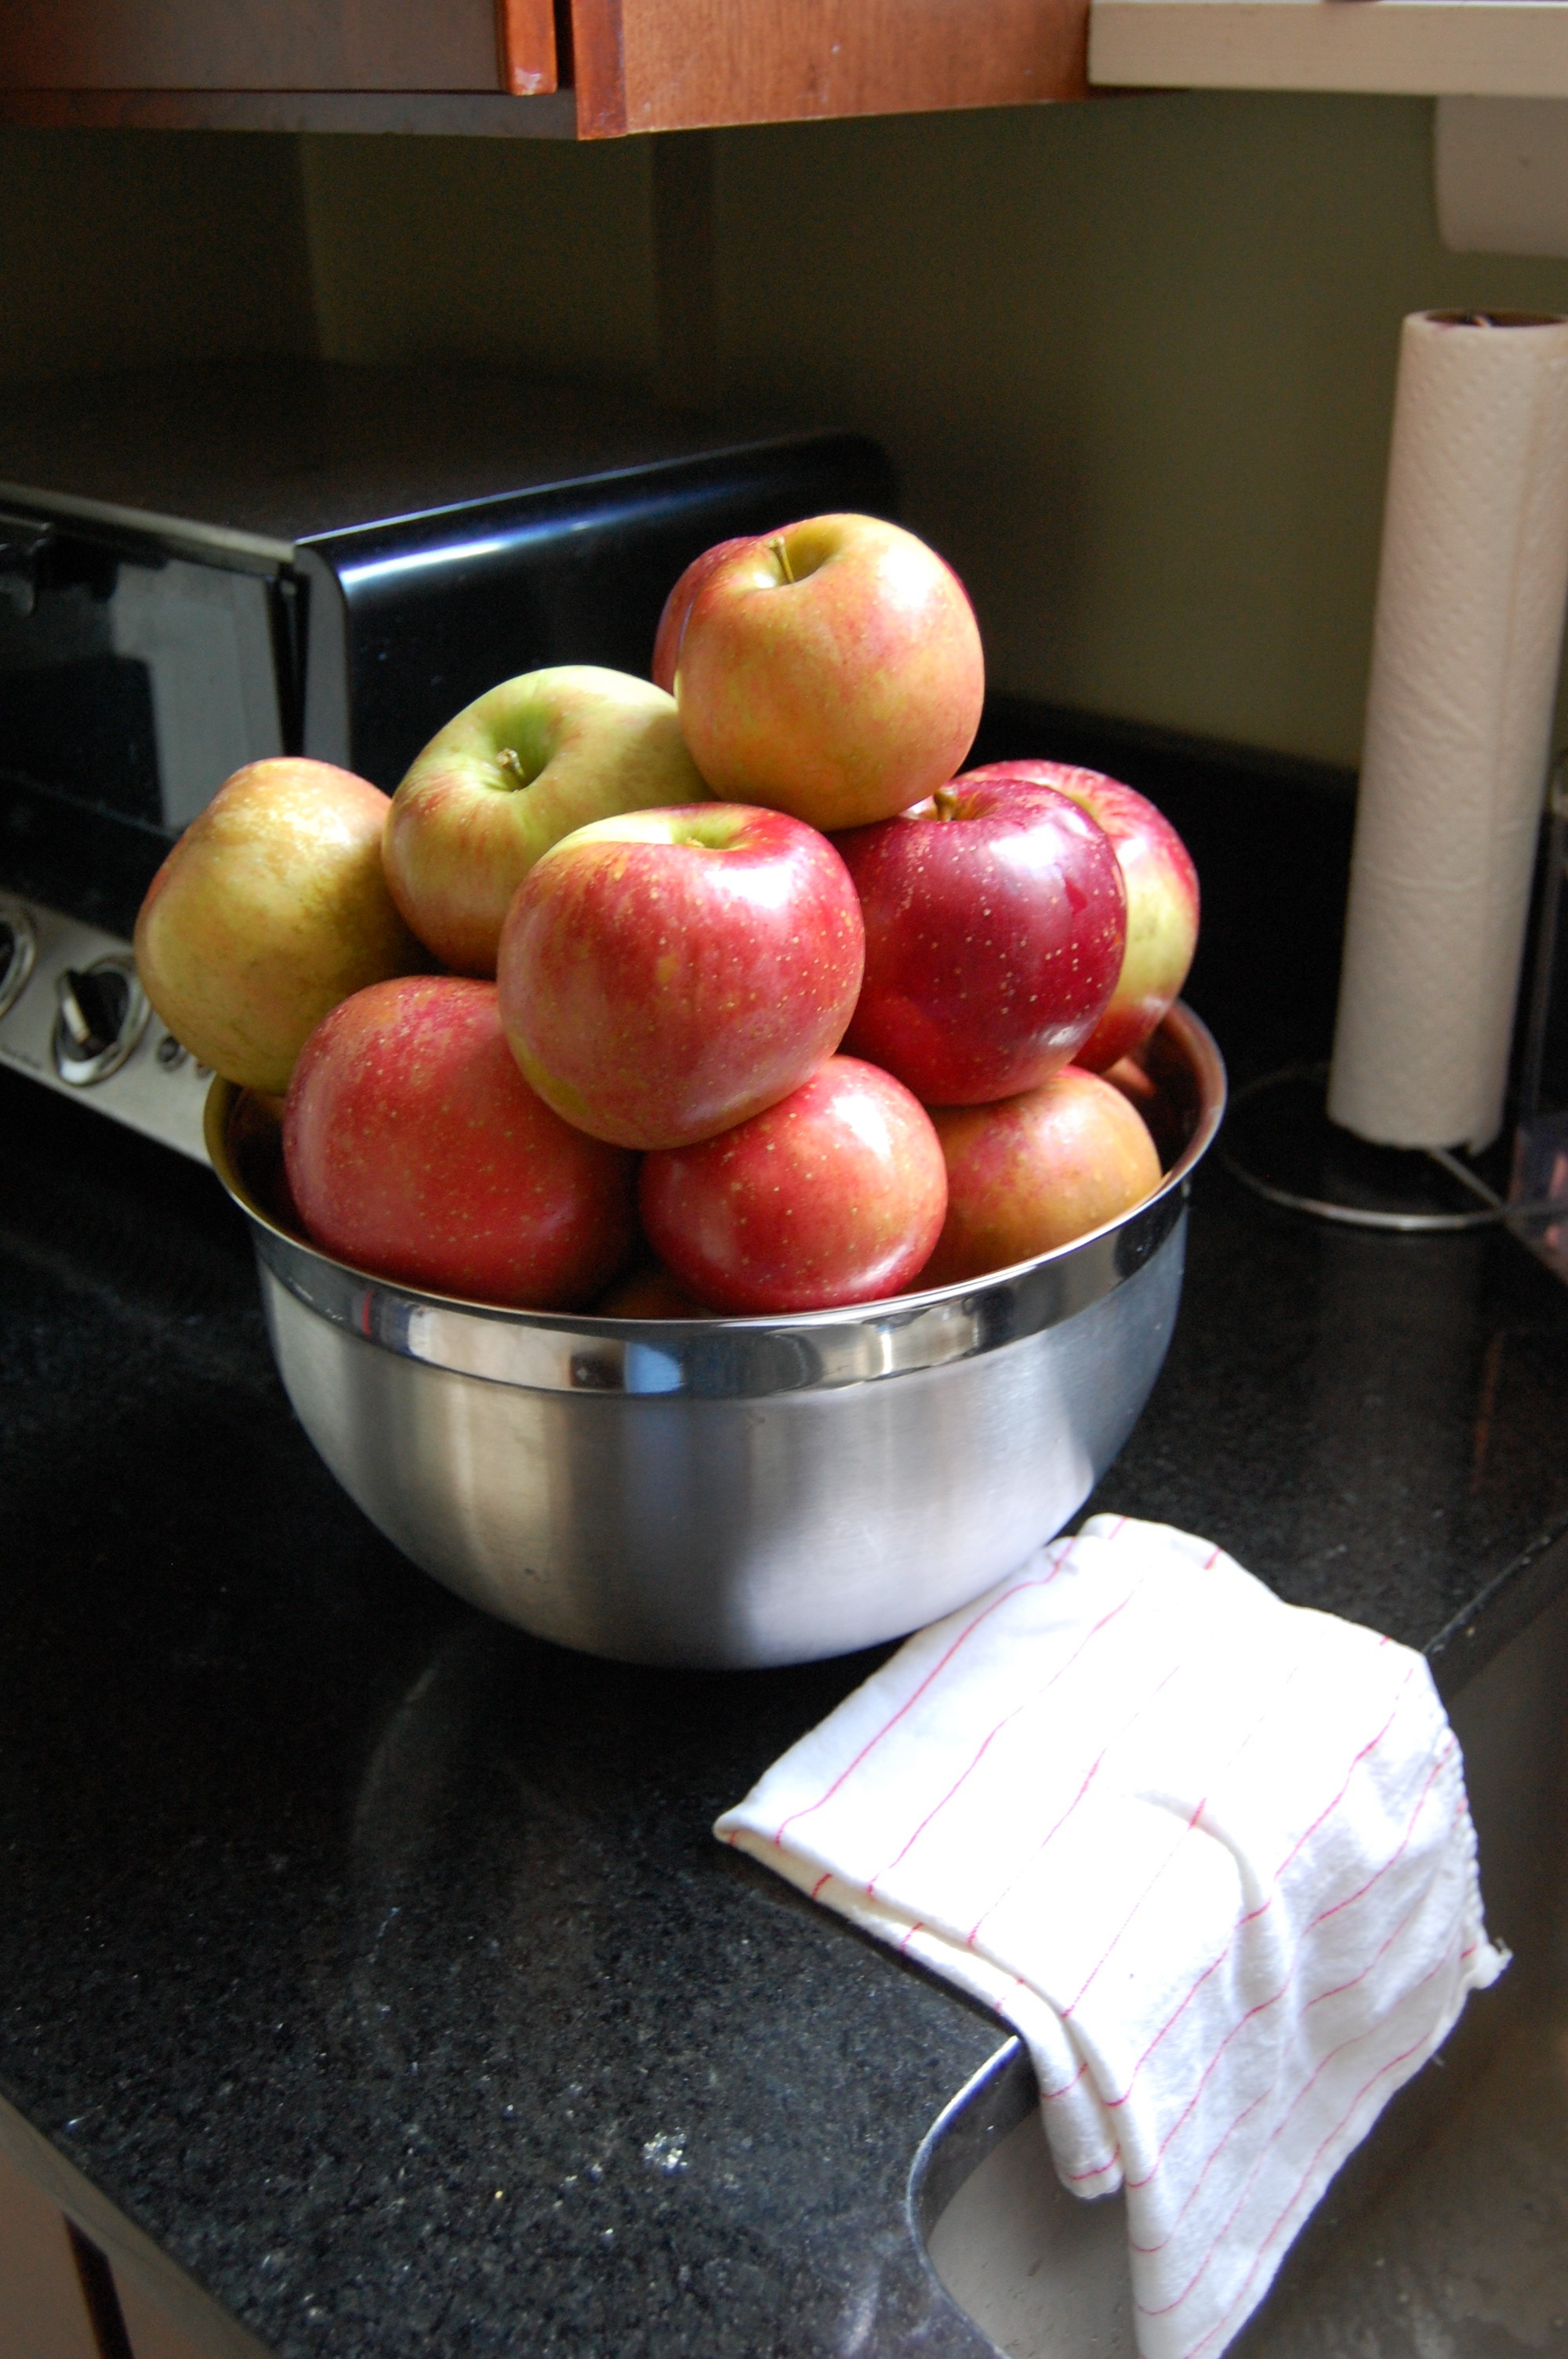 Pick your favorite apples (store or orchard) - We chose Melrose